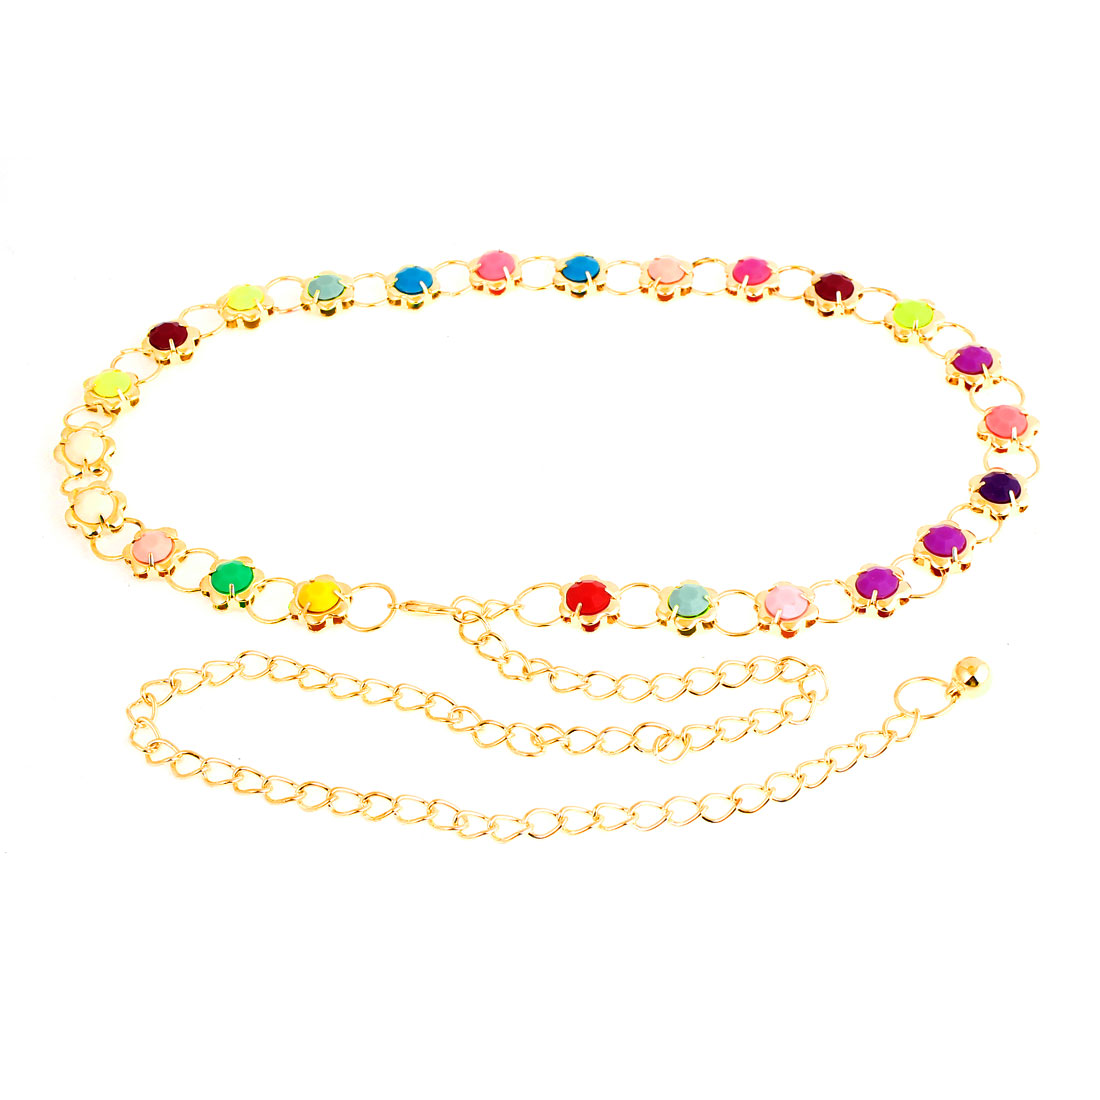 Woman Multicolor Beads Accent Metallic Flower Shaped Waist Chain Gold Tone